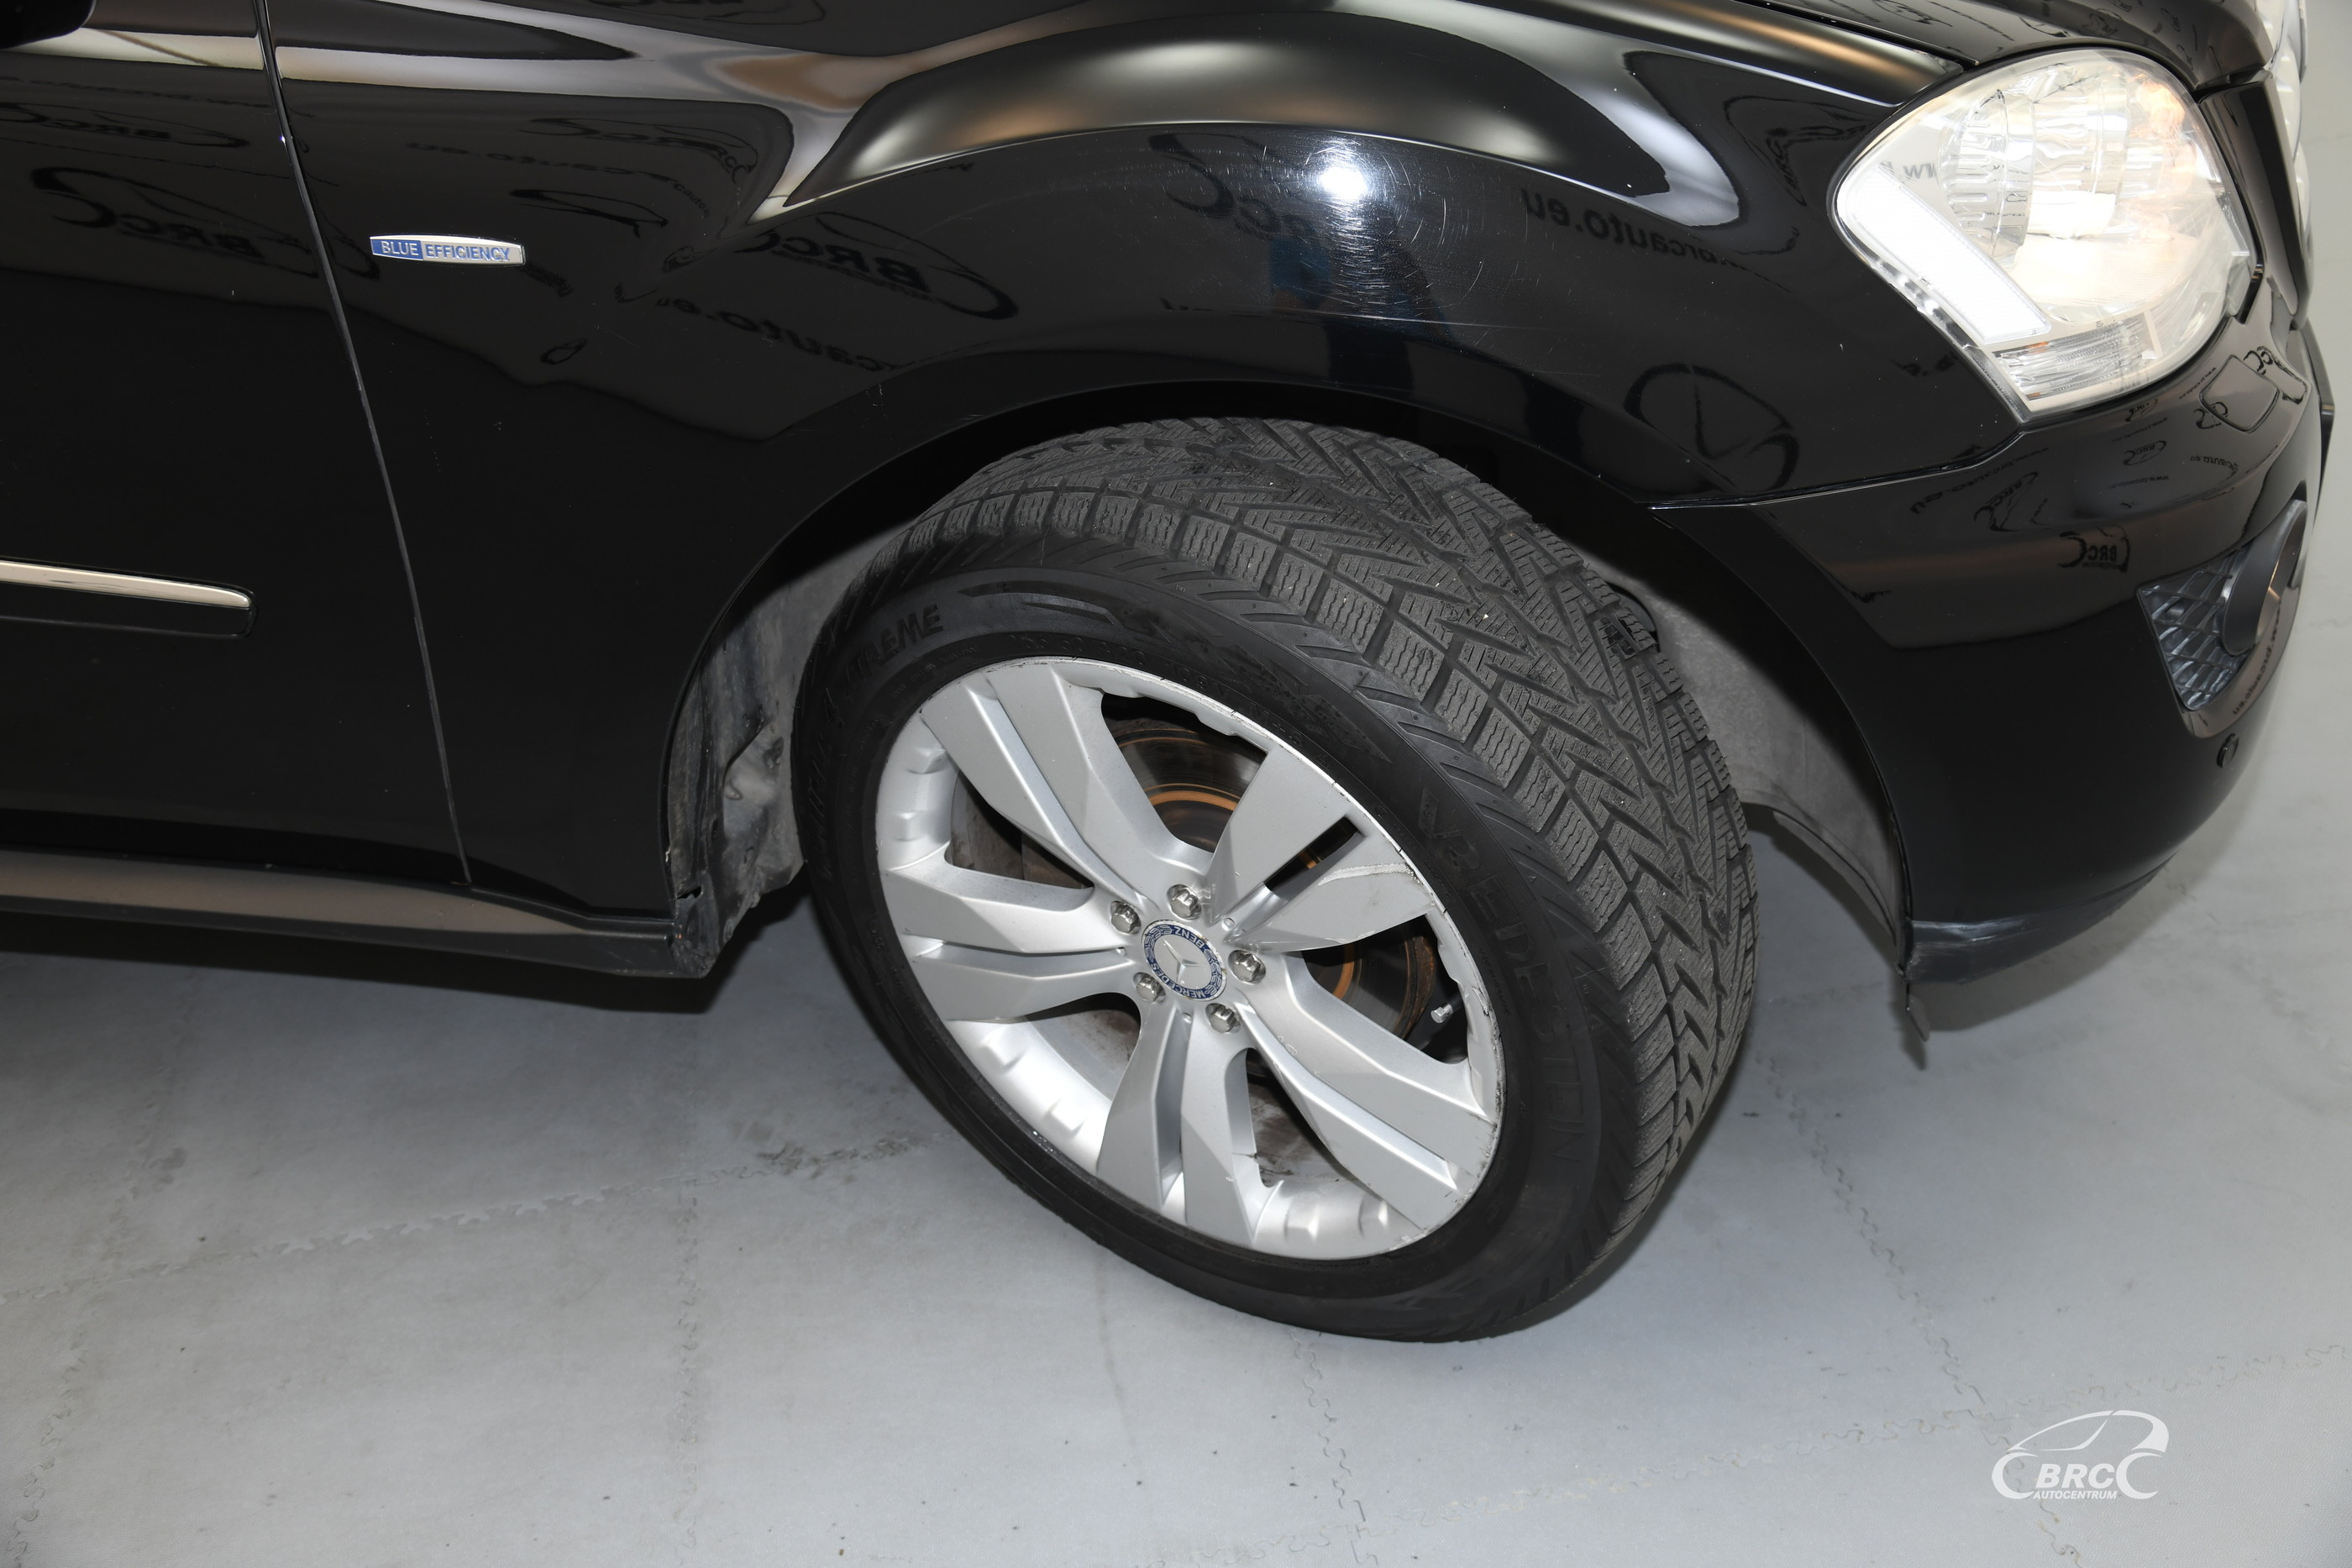 Mercedes-Benz ML 300 4Matic Automatas